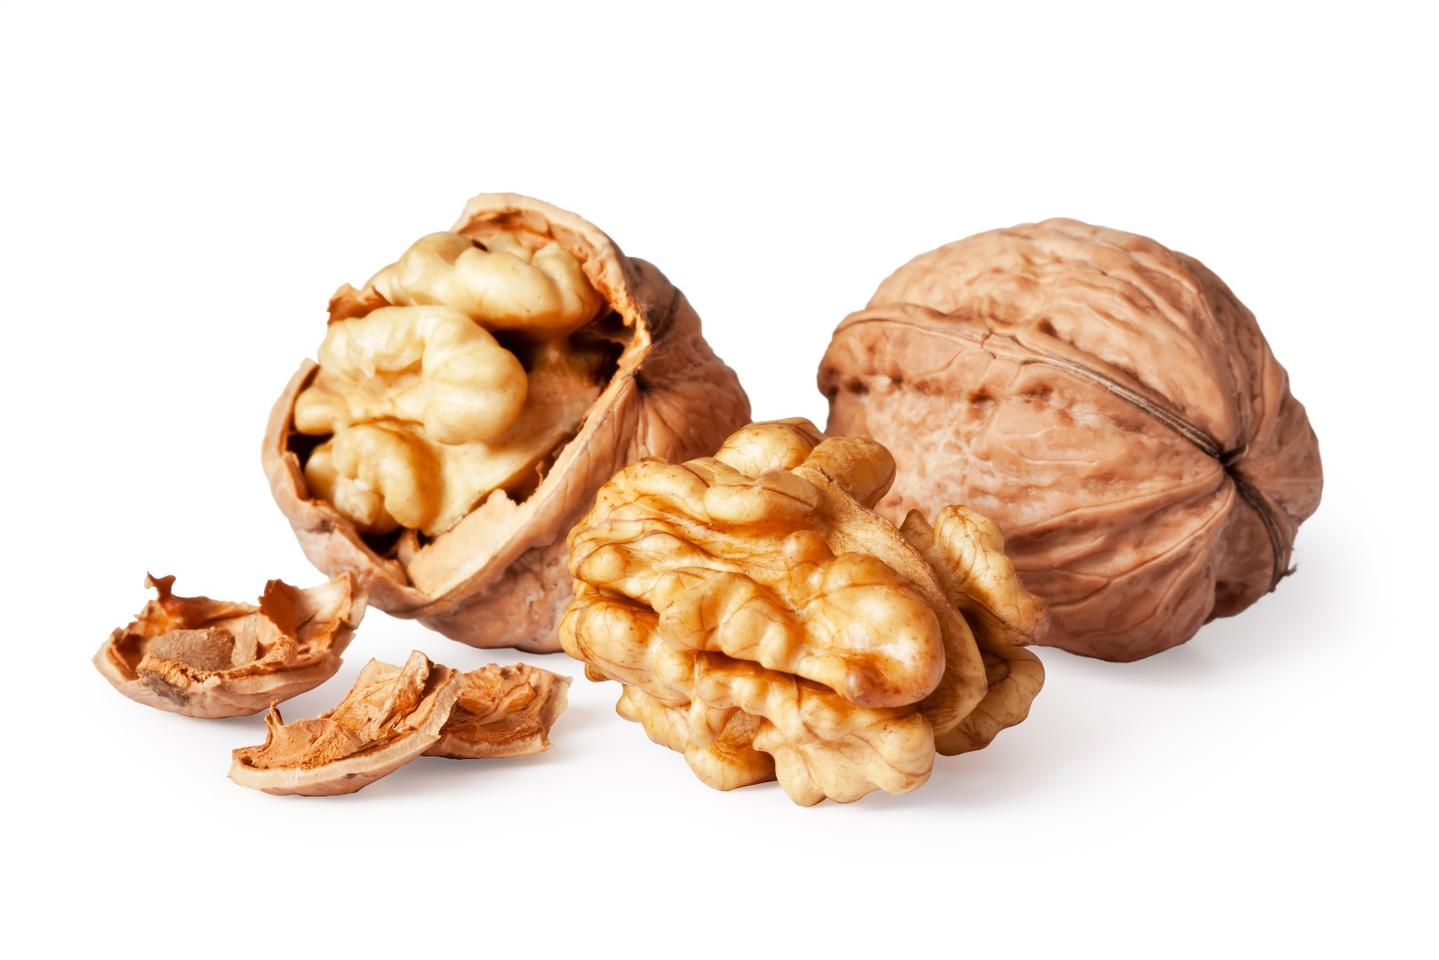 A scientific study has explored the appetite-suppressing effect of walnuts